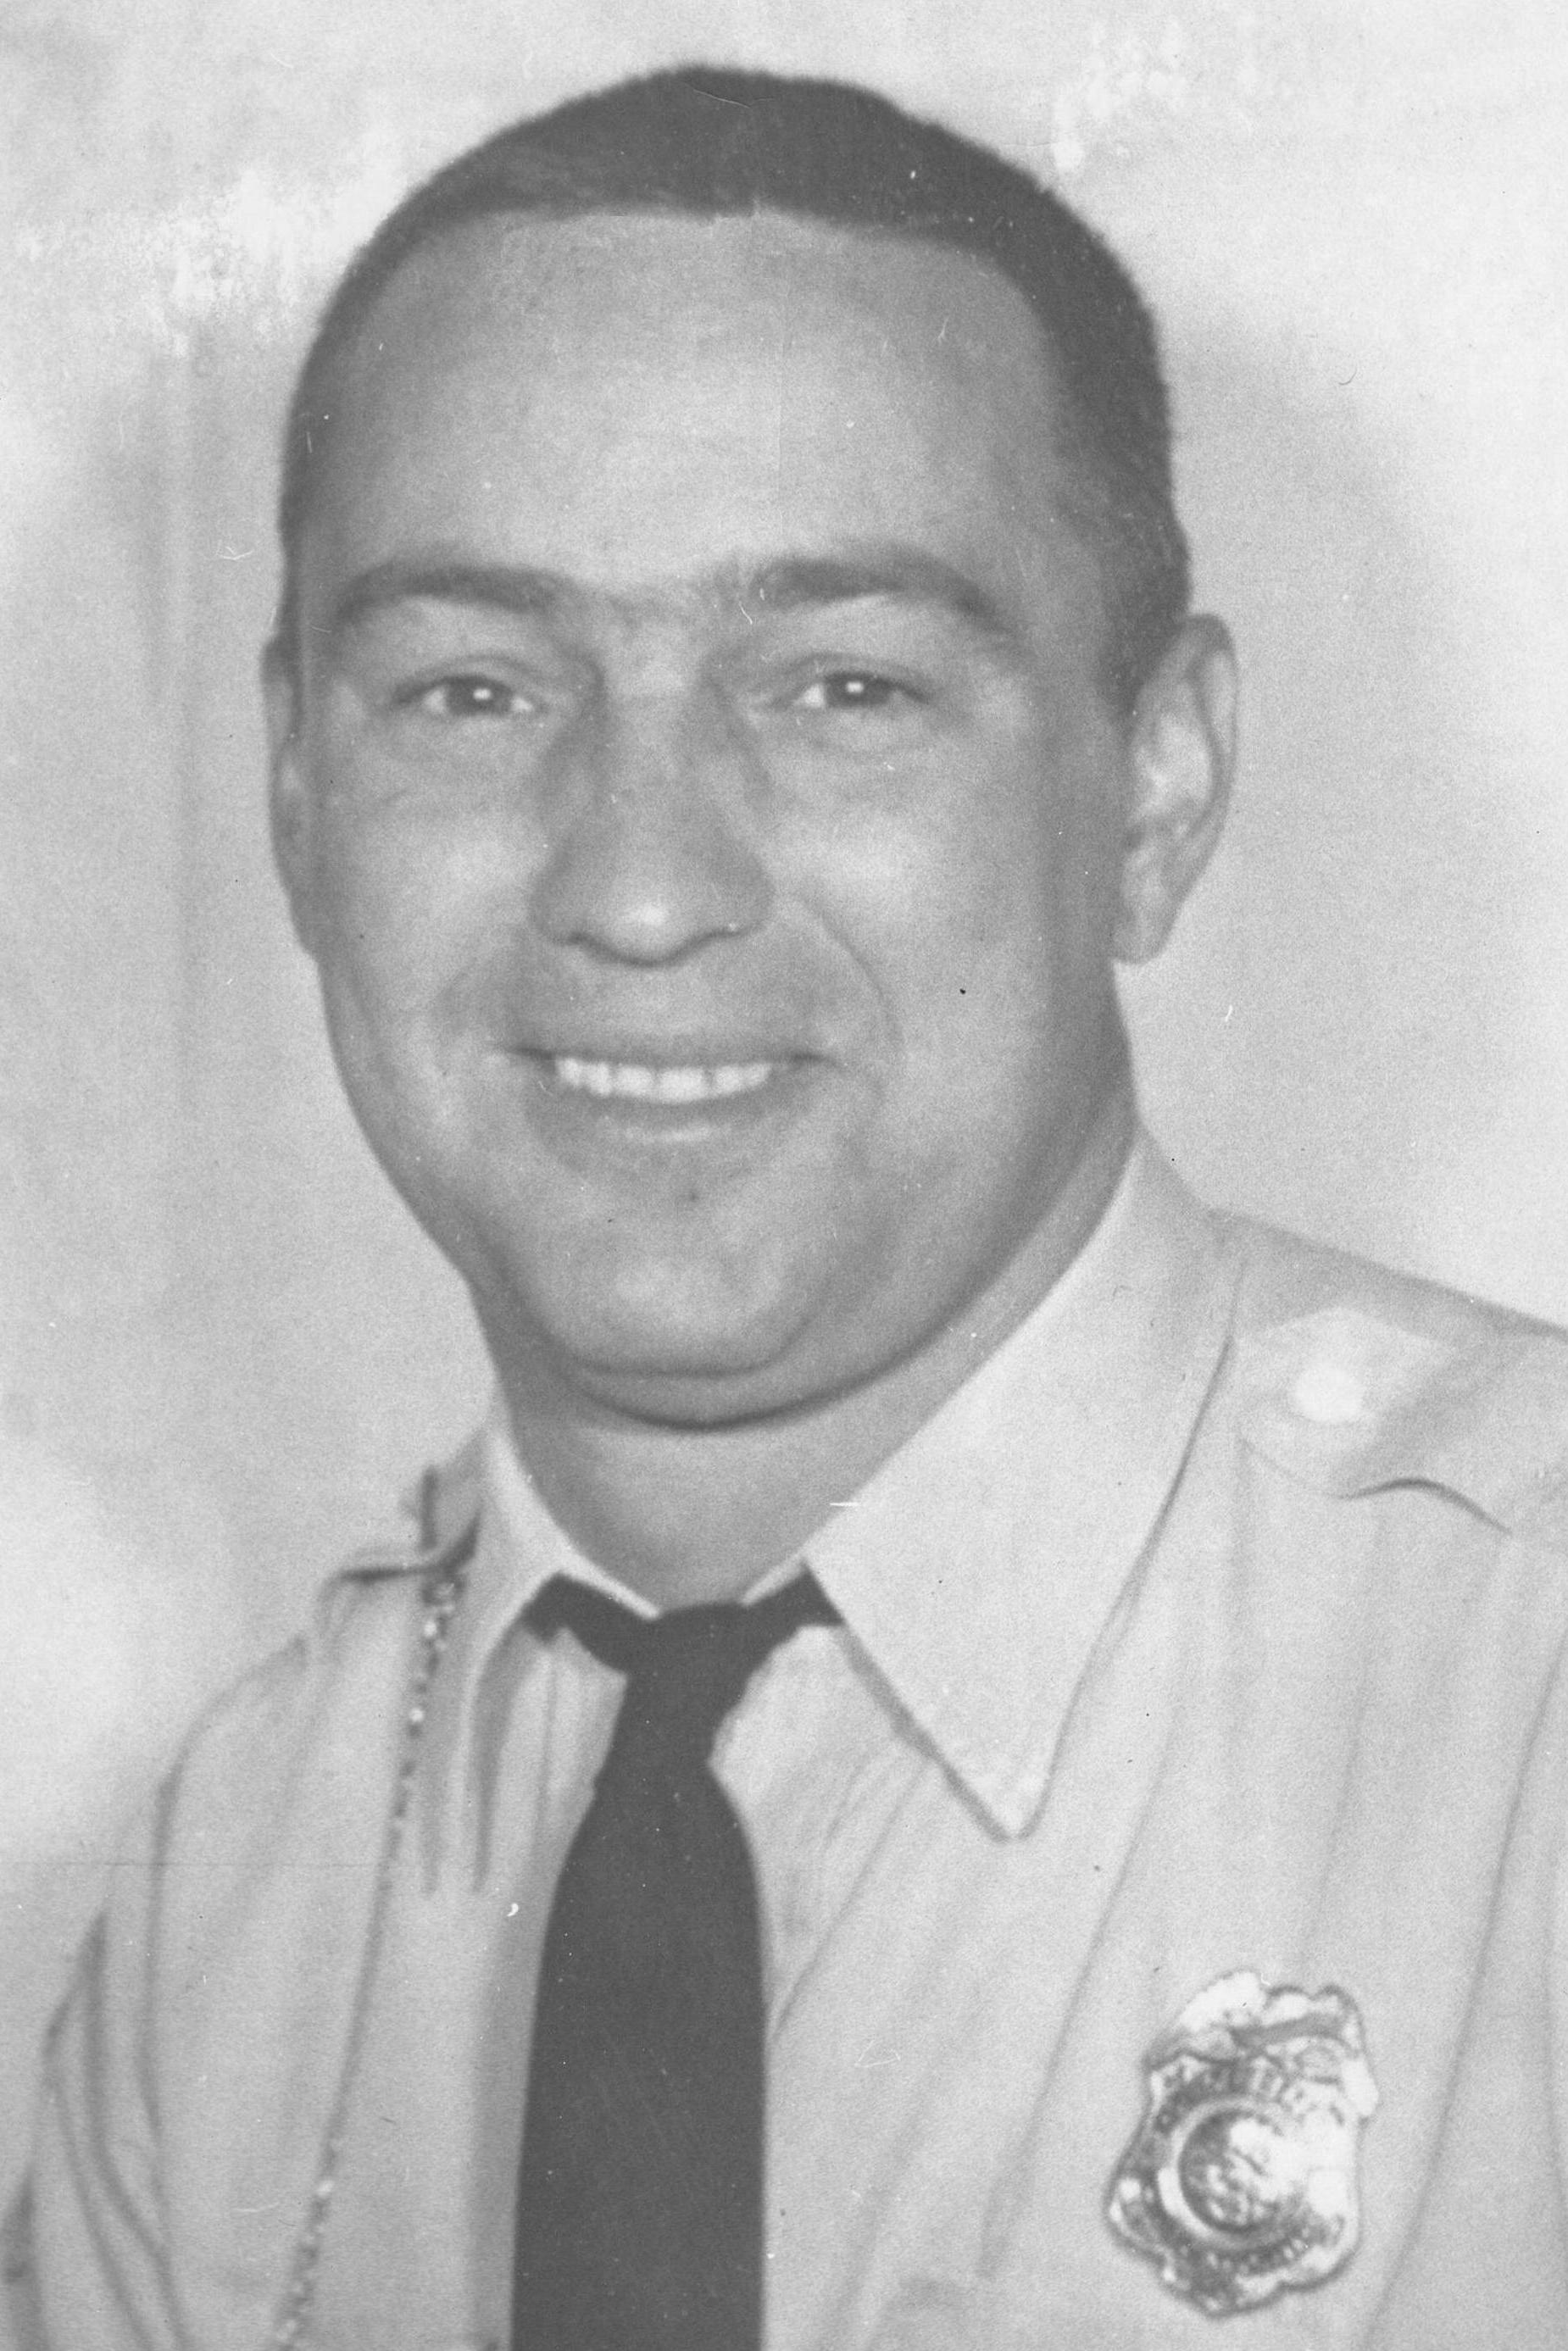 Reserve Officer Harold L. Wintrow | Akron Police Department, Ohio